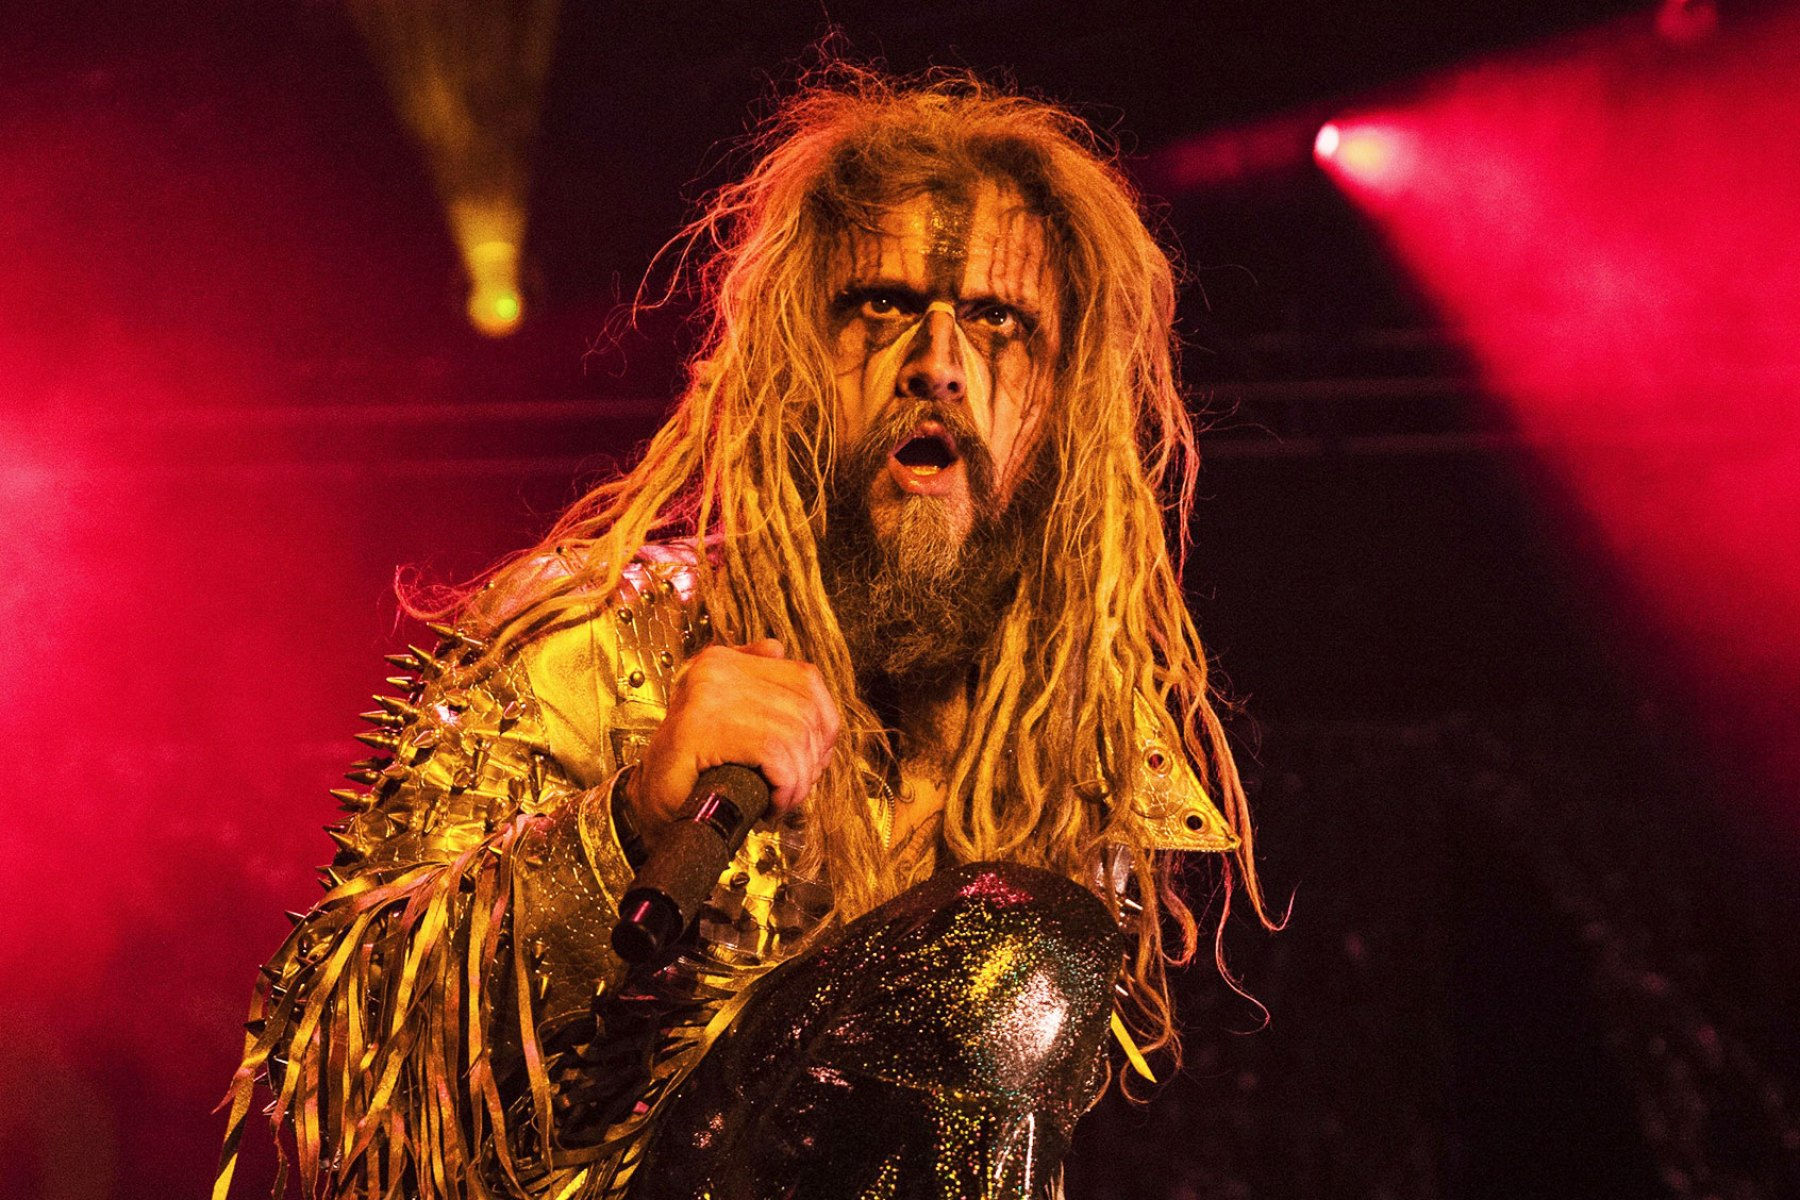 Hear Marilyn Manson Rob Zombie Cover Beatles Helter Skelter Rolling Stone